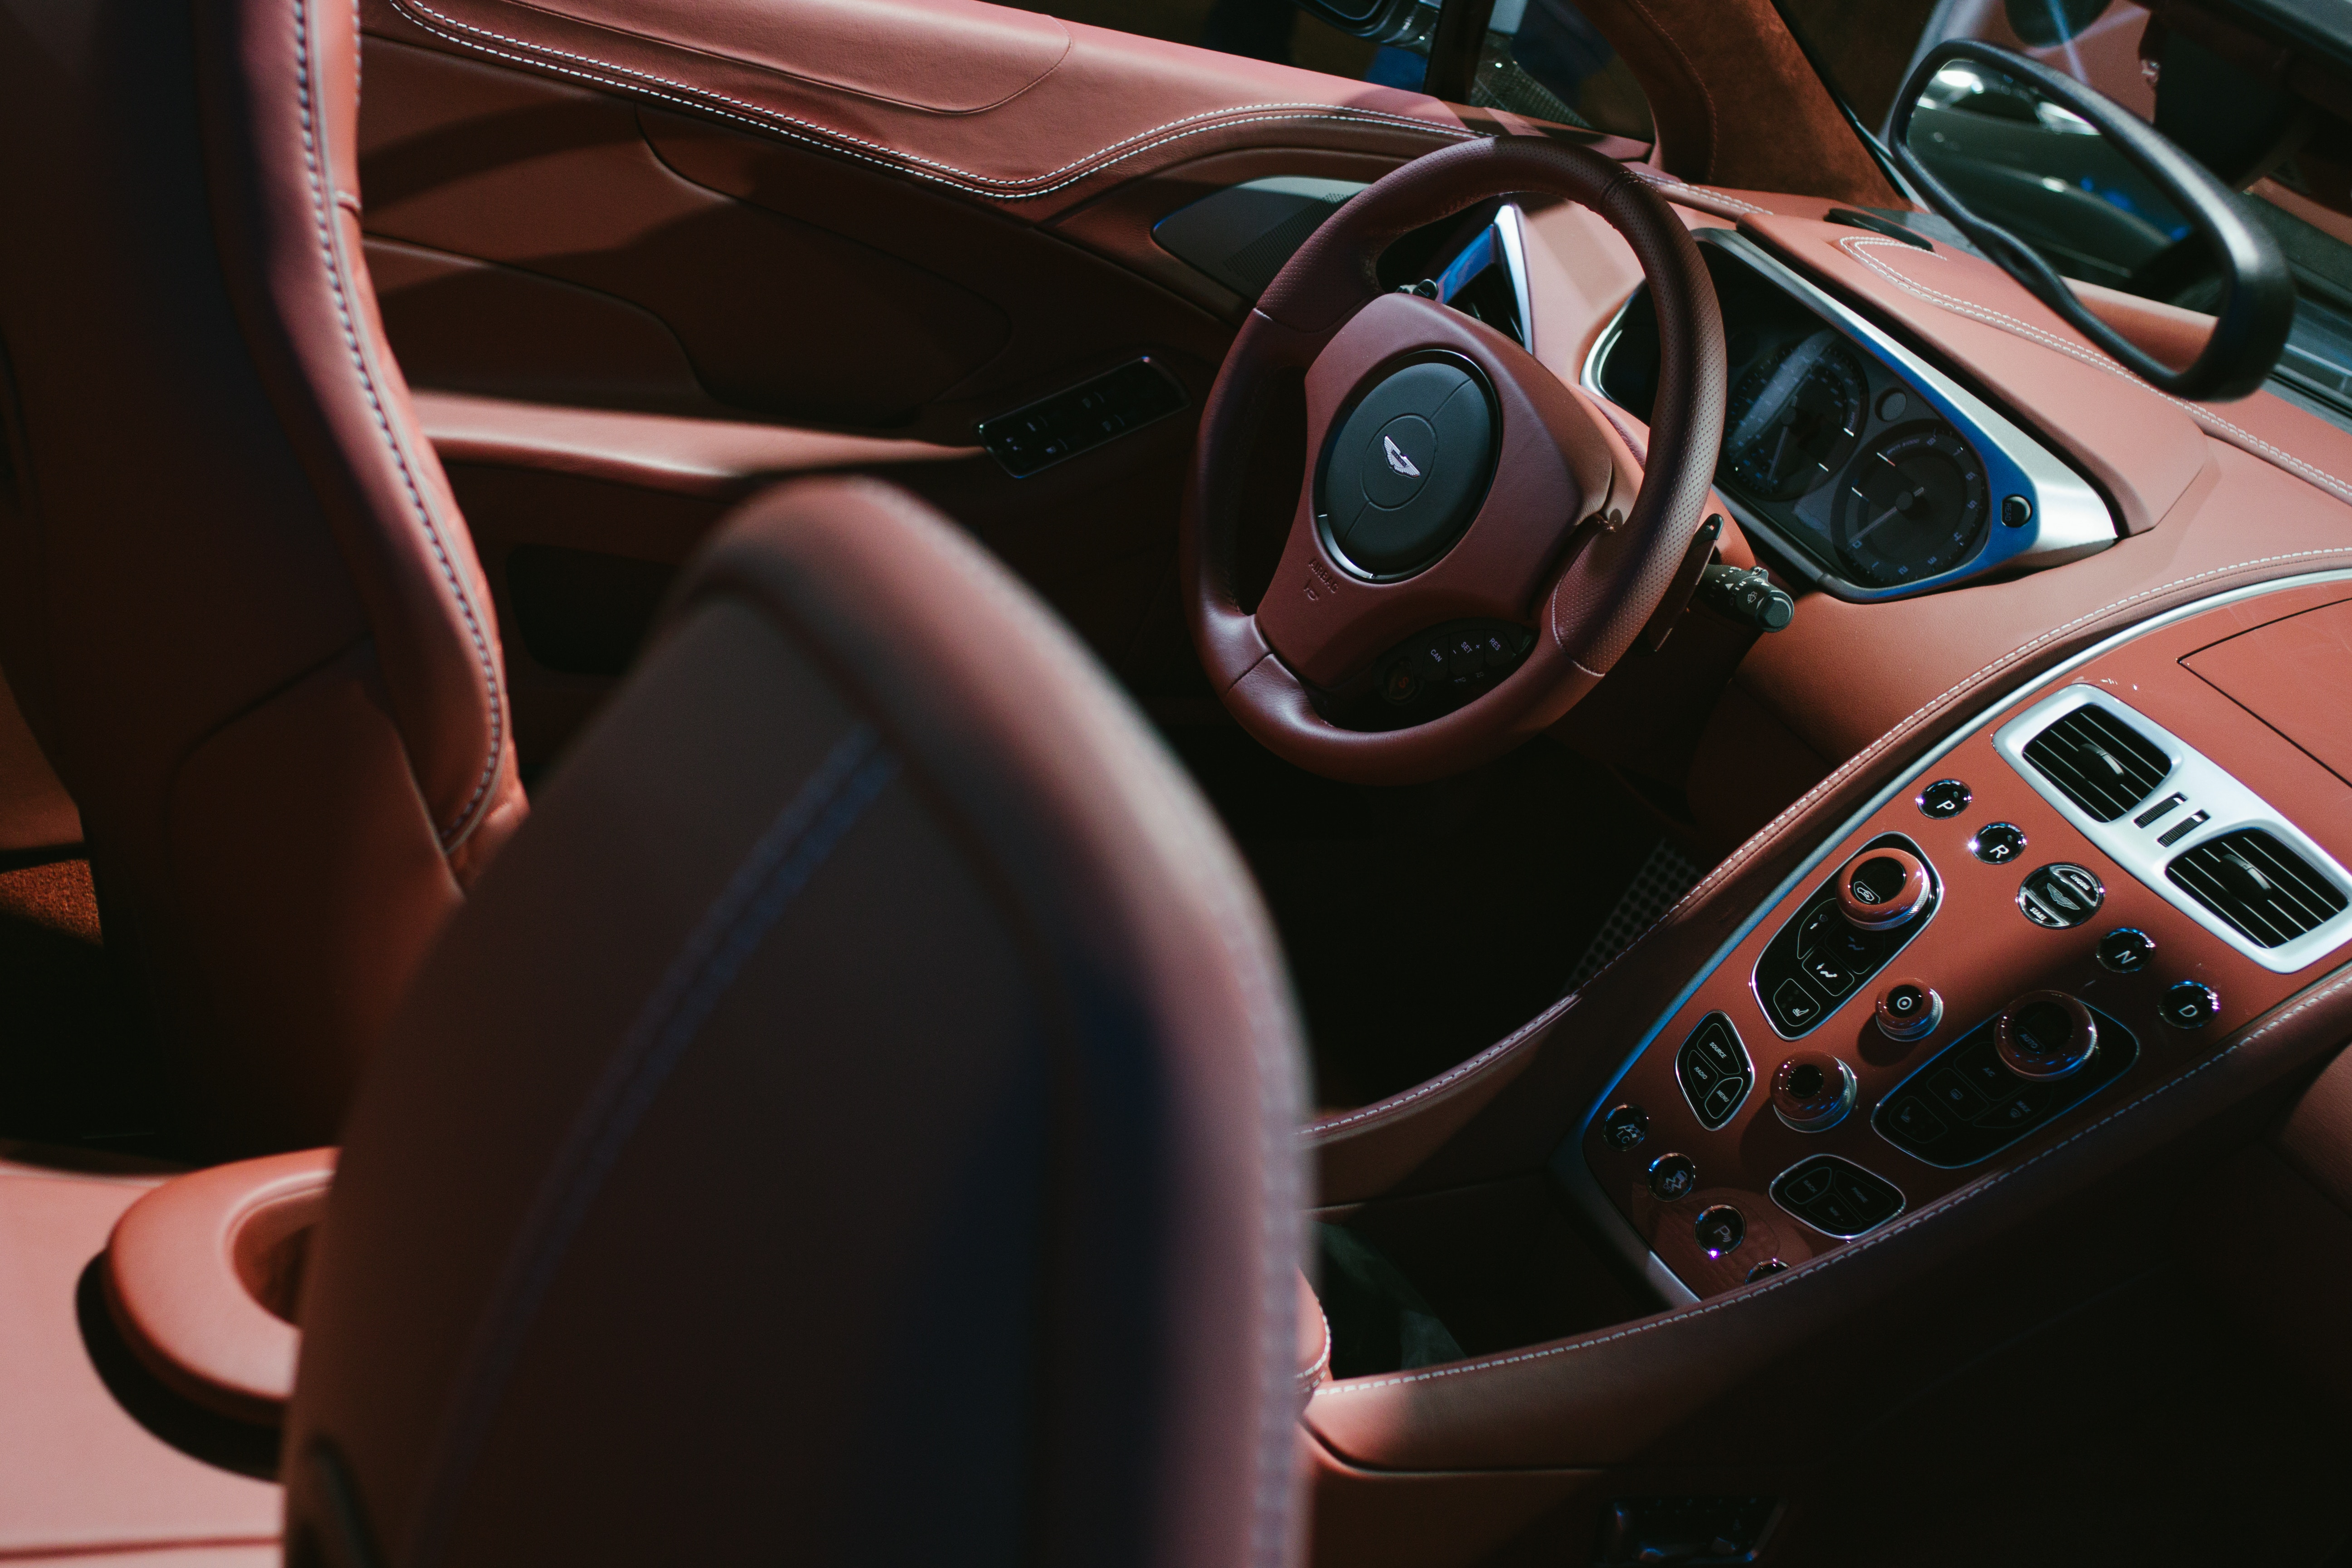 Cloth Or Leather? Which Interior Should You Choose?